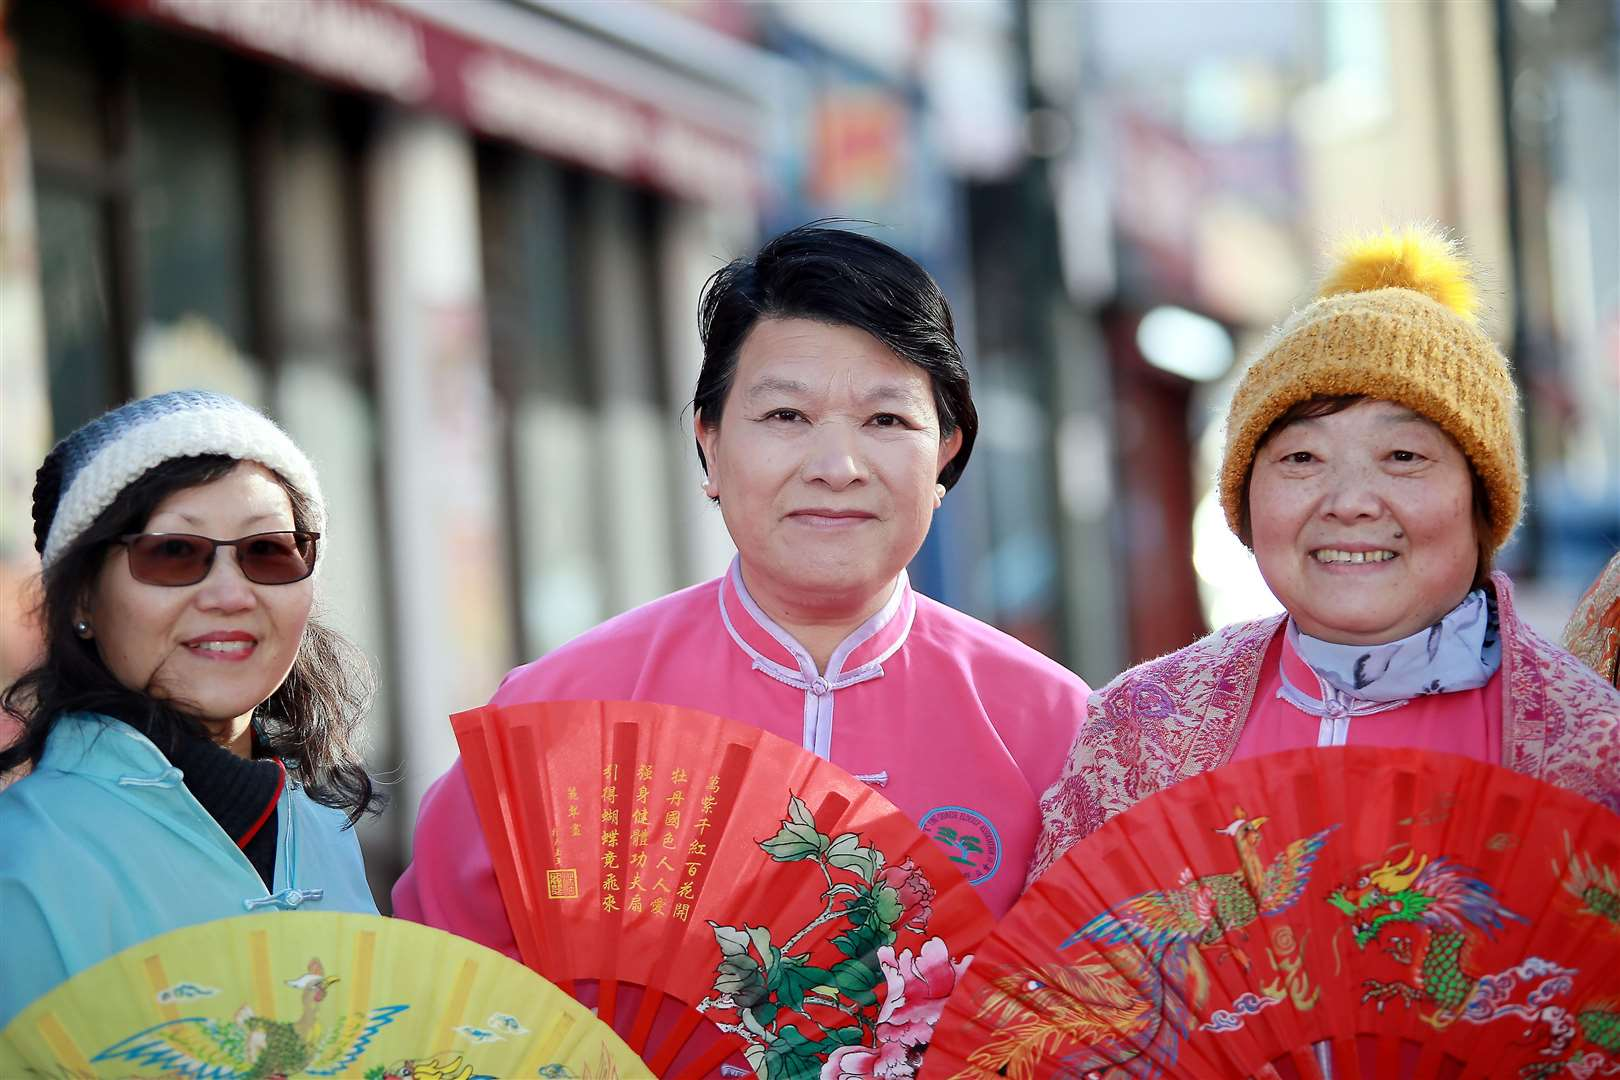 Communities across Kent will be celebrating Chinese New Year